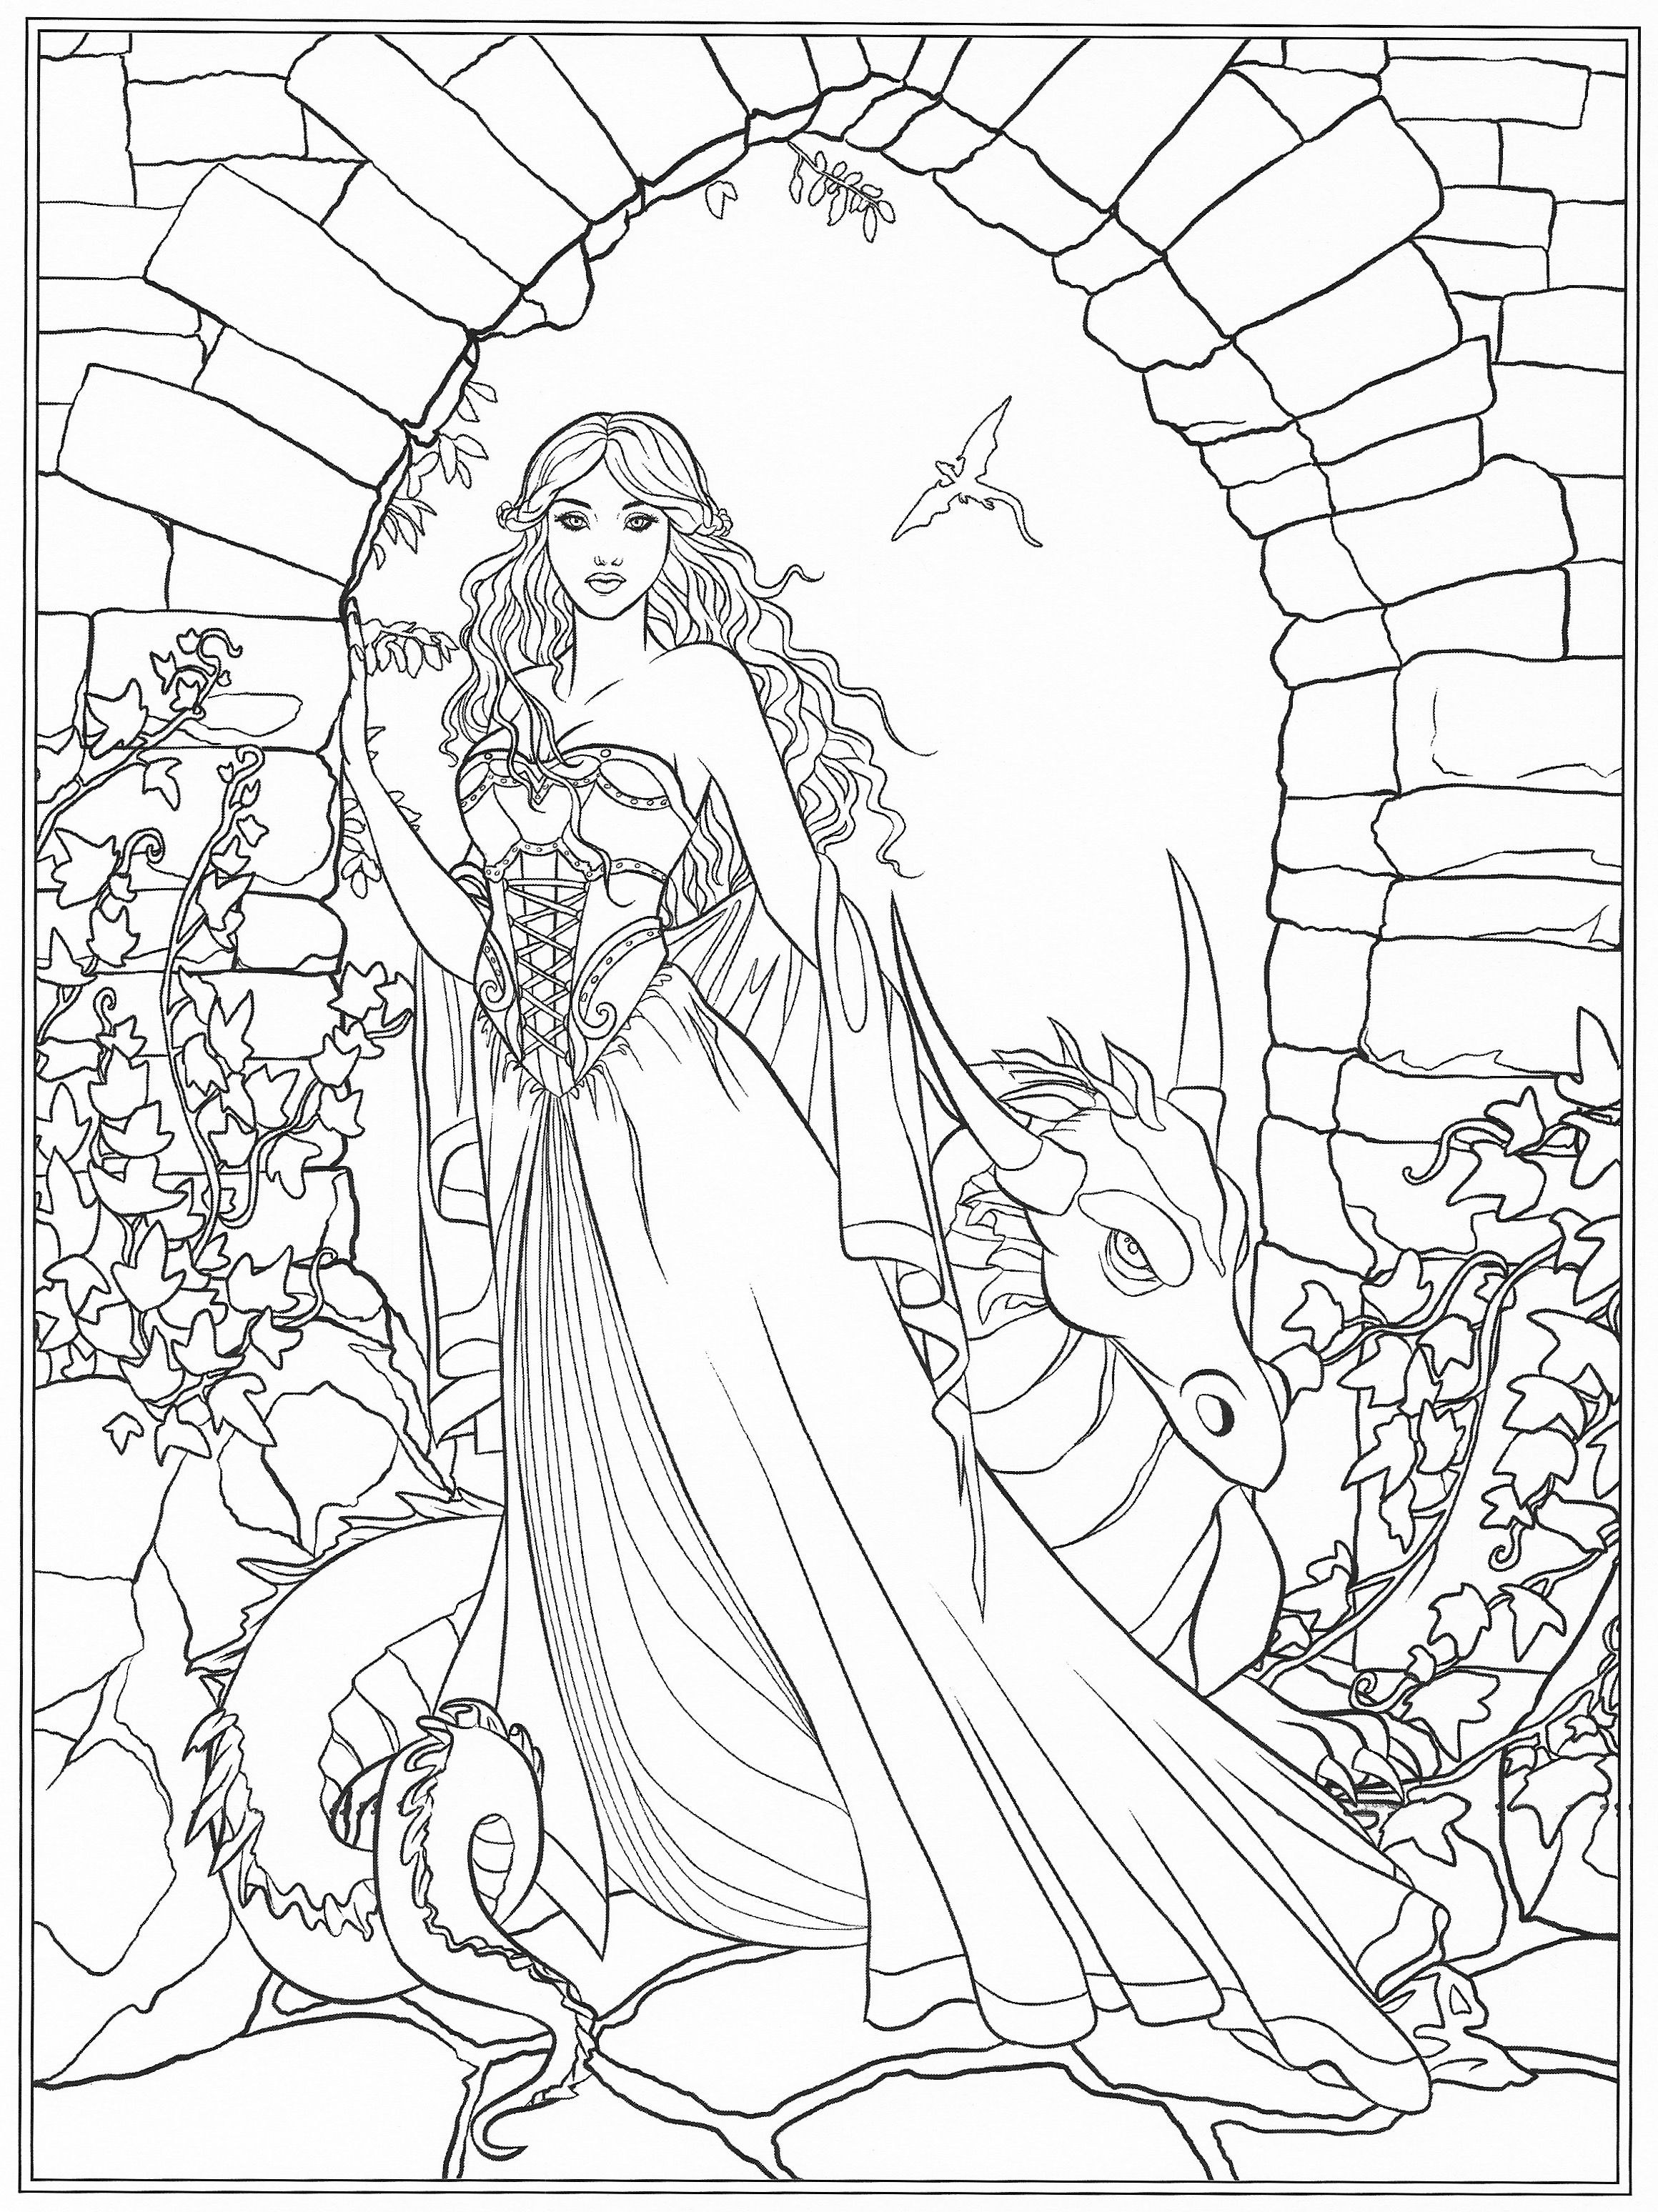 fantasy coloring pages for adults # 1